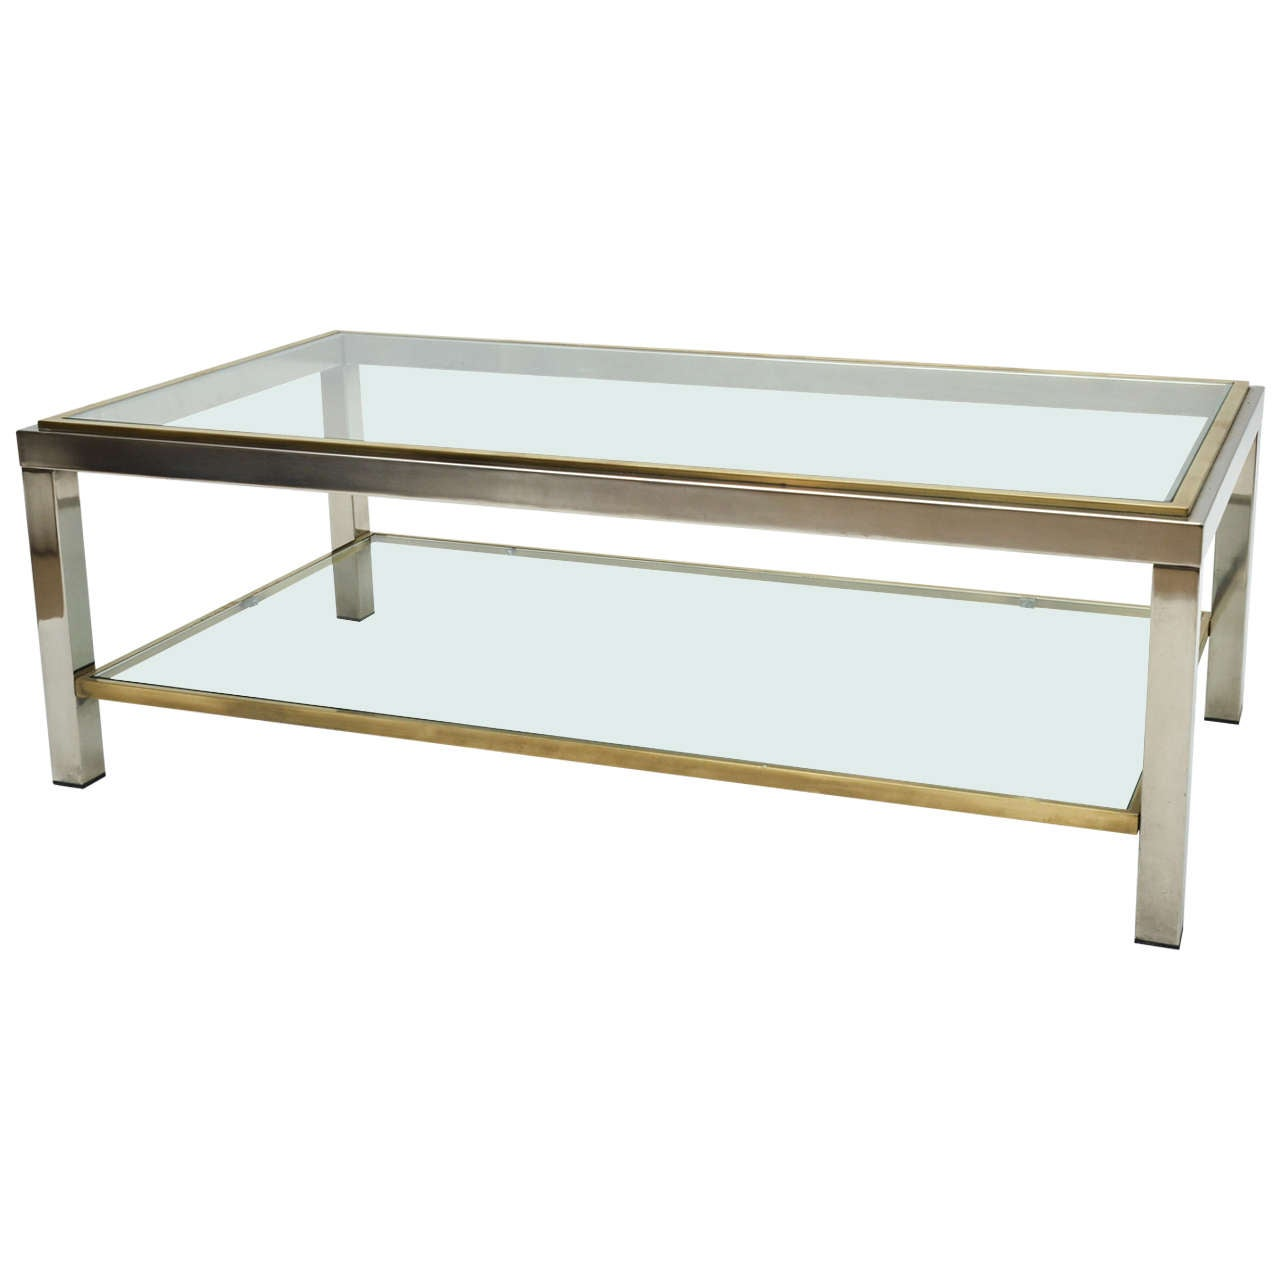 Mid-Century Modern French Brass and Chrome Glass Coffee Table 1 - Mid-Century Modern French Brass And Chrome Glass Coffee Table For